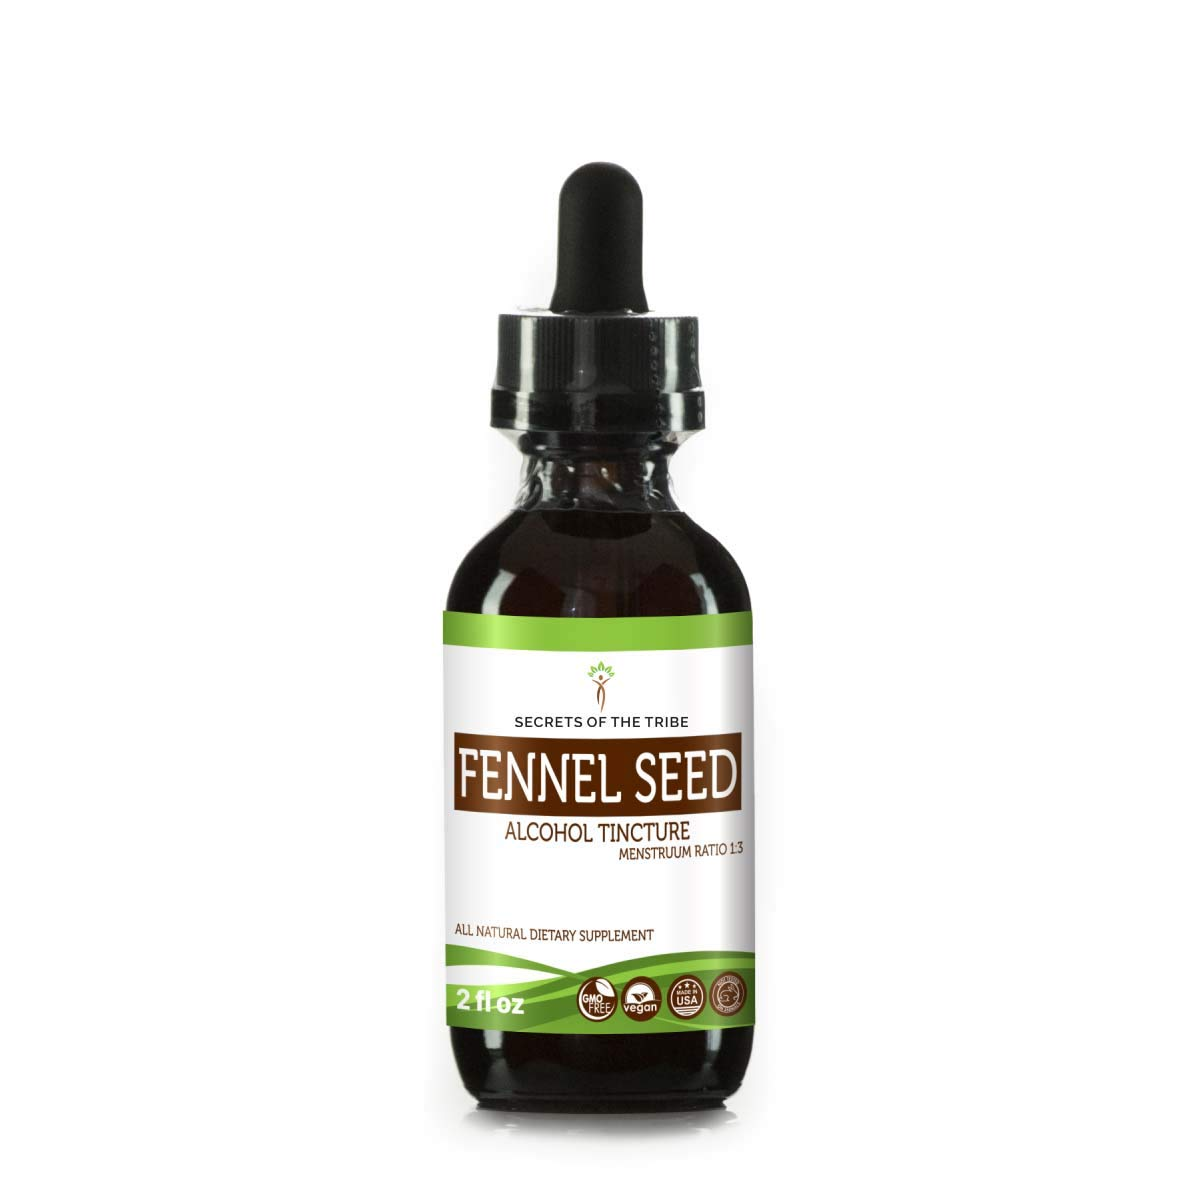 Fennel Seed Tincture Alcohol Extract, Organic Fennel (Foeniculum vulgare) Dried Seed Tincture Supplement (2 FL OZ)